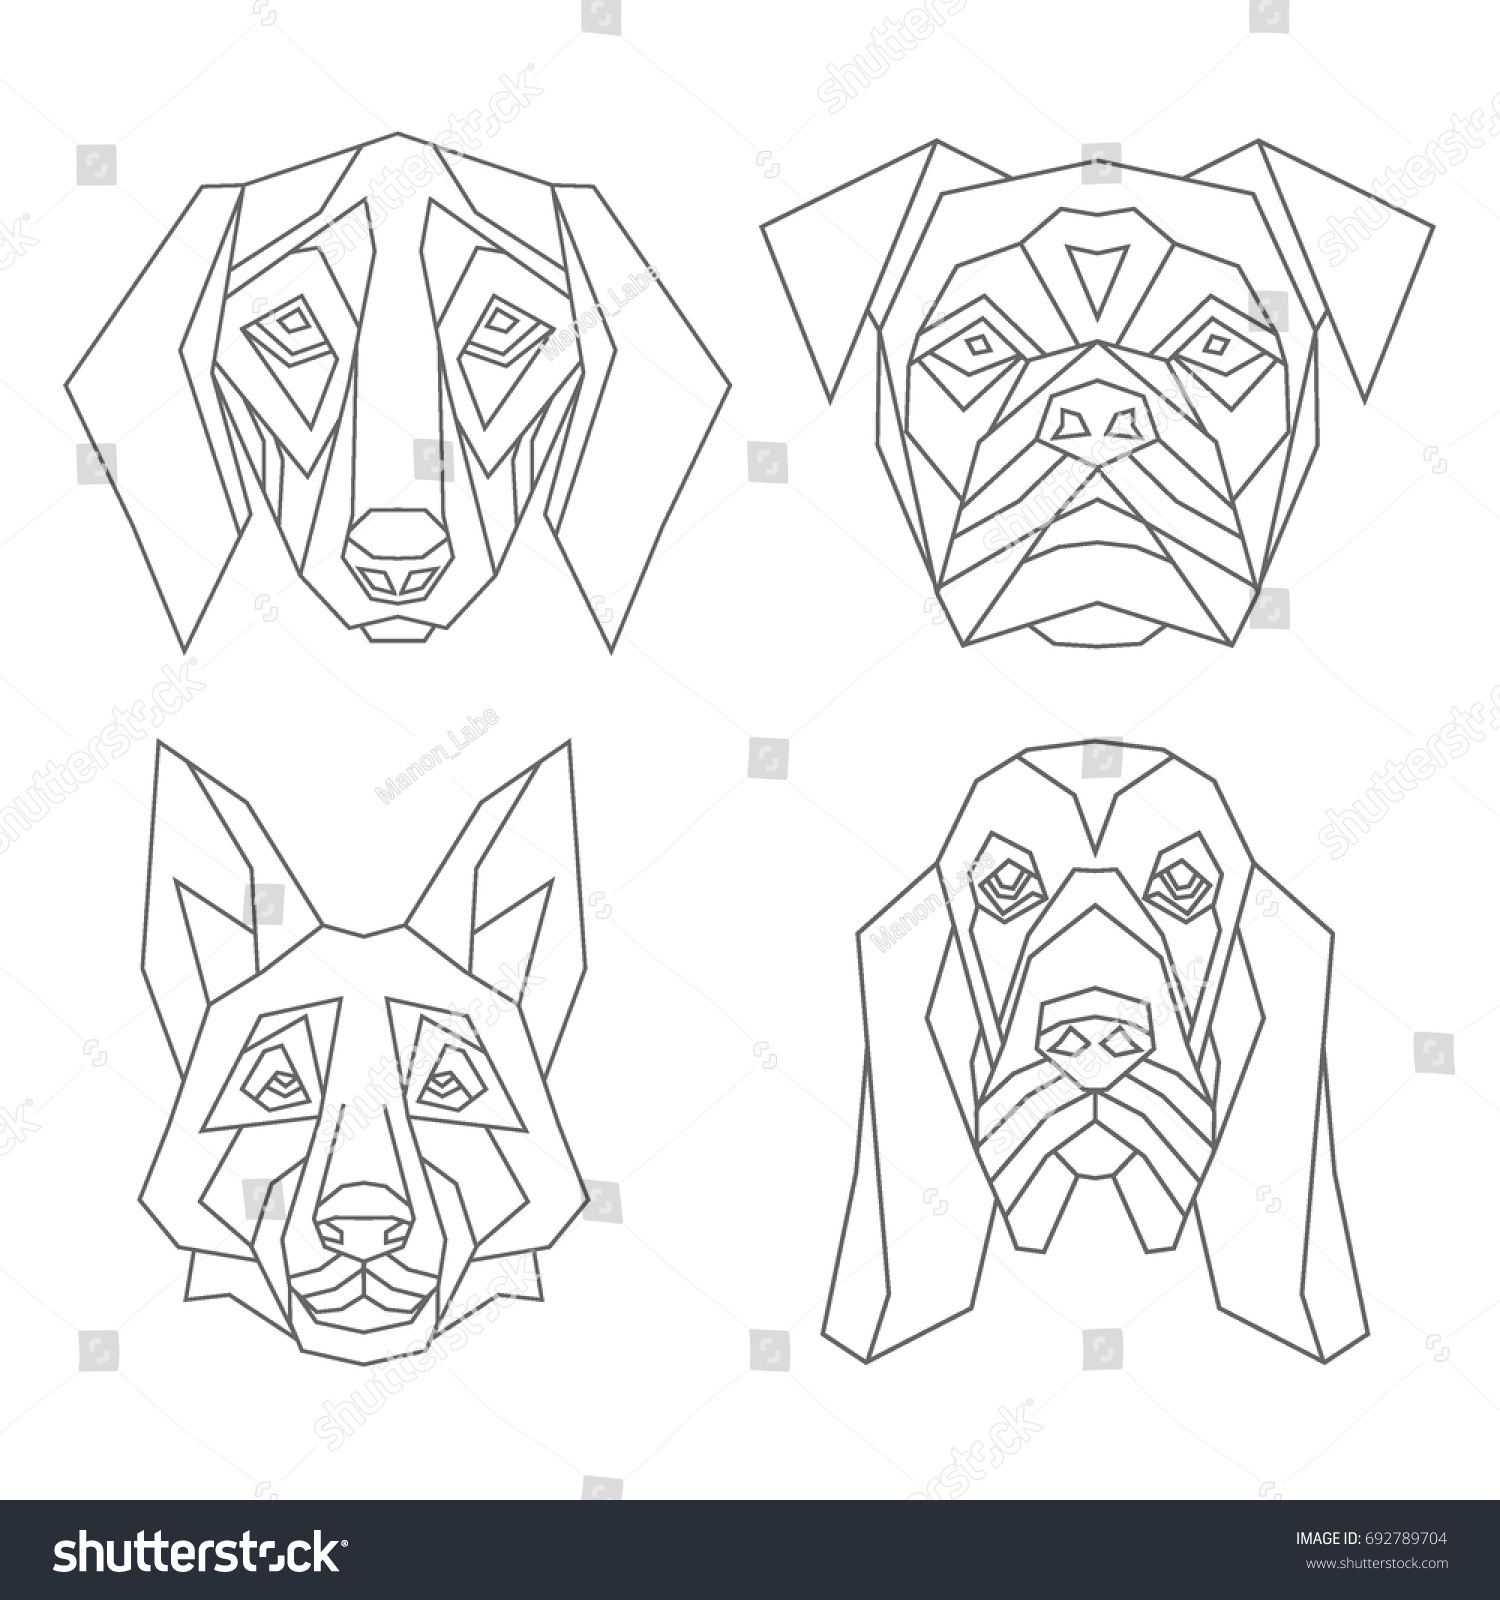 https://image.shutterstock.com/z/stock-vector-geometric-set-of-vector-dog-heads-shepherd-badger-bulldog-spaniel-drawn-in-line-or-triangle-692789704.jpg